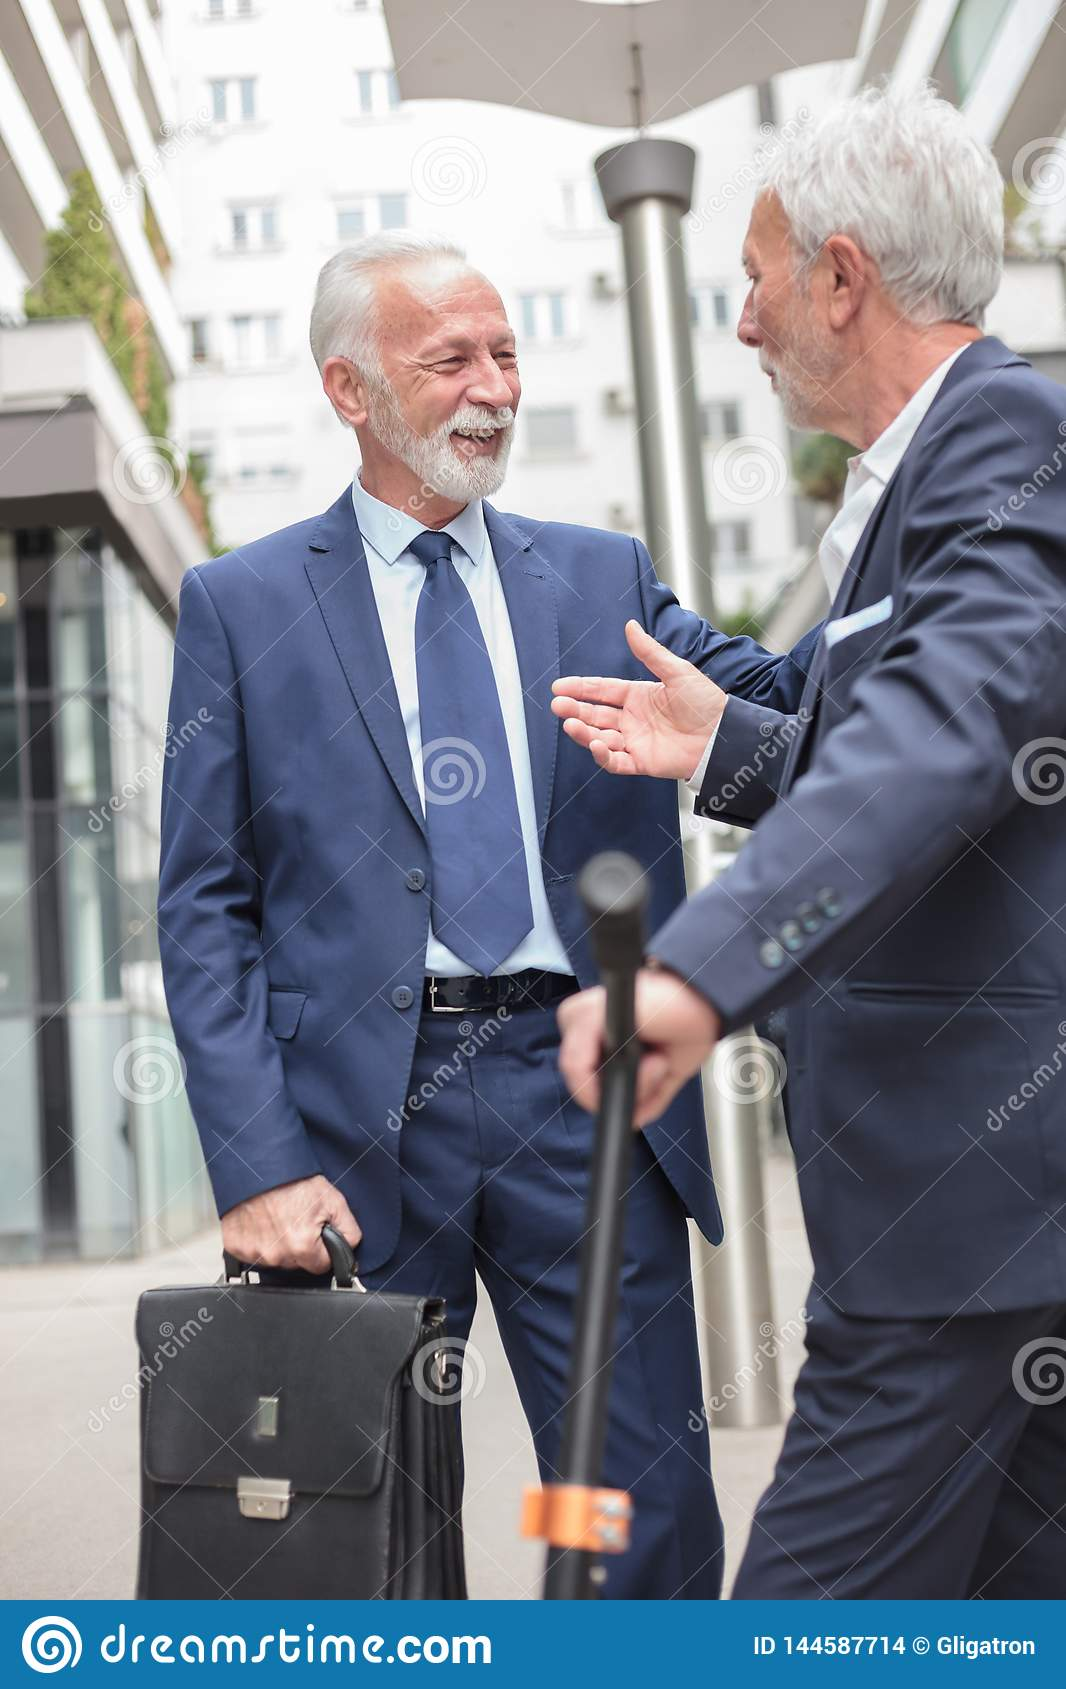 Two smiling senior businessmen meeting and talking on the sidewalk, surrounded by office buildings